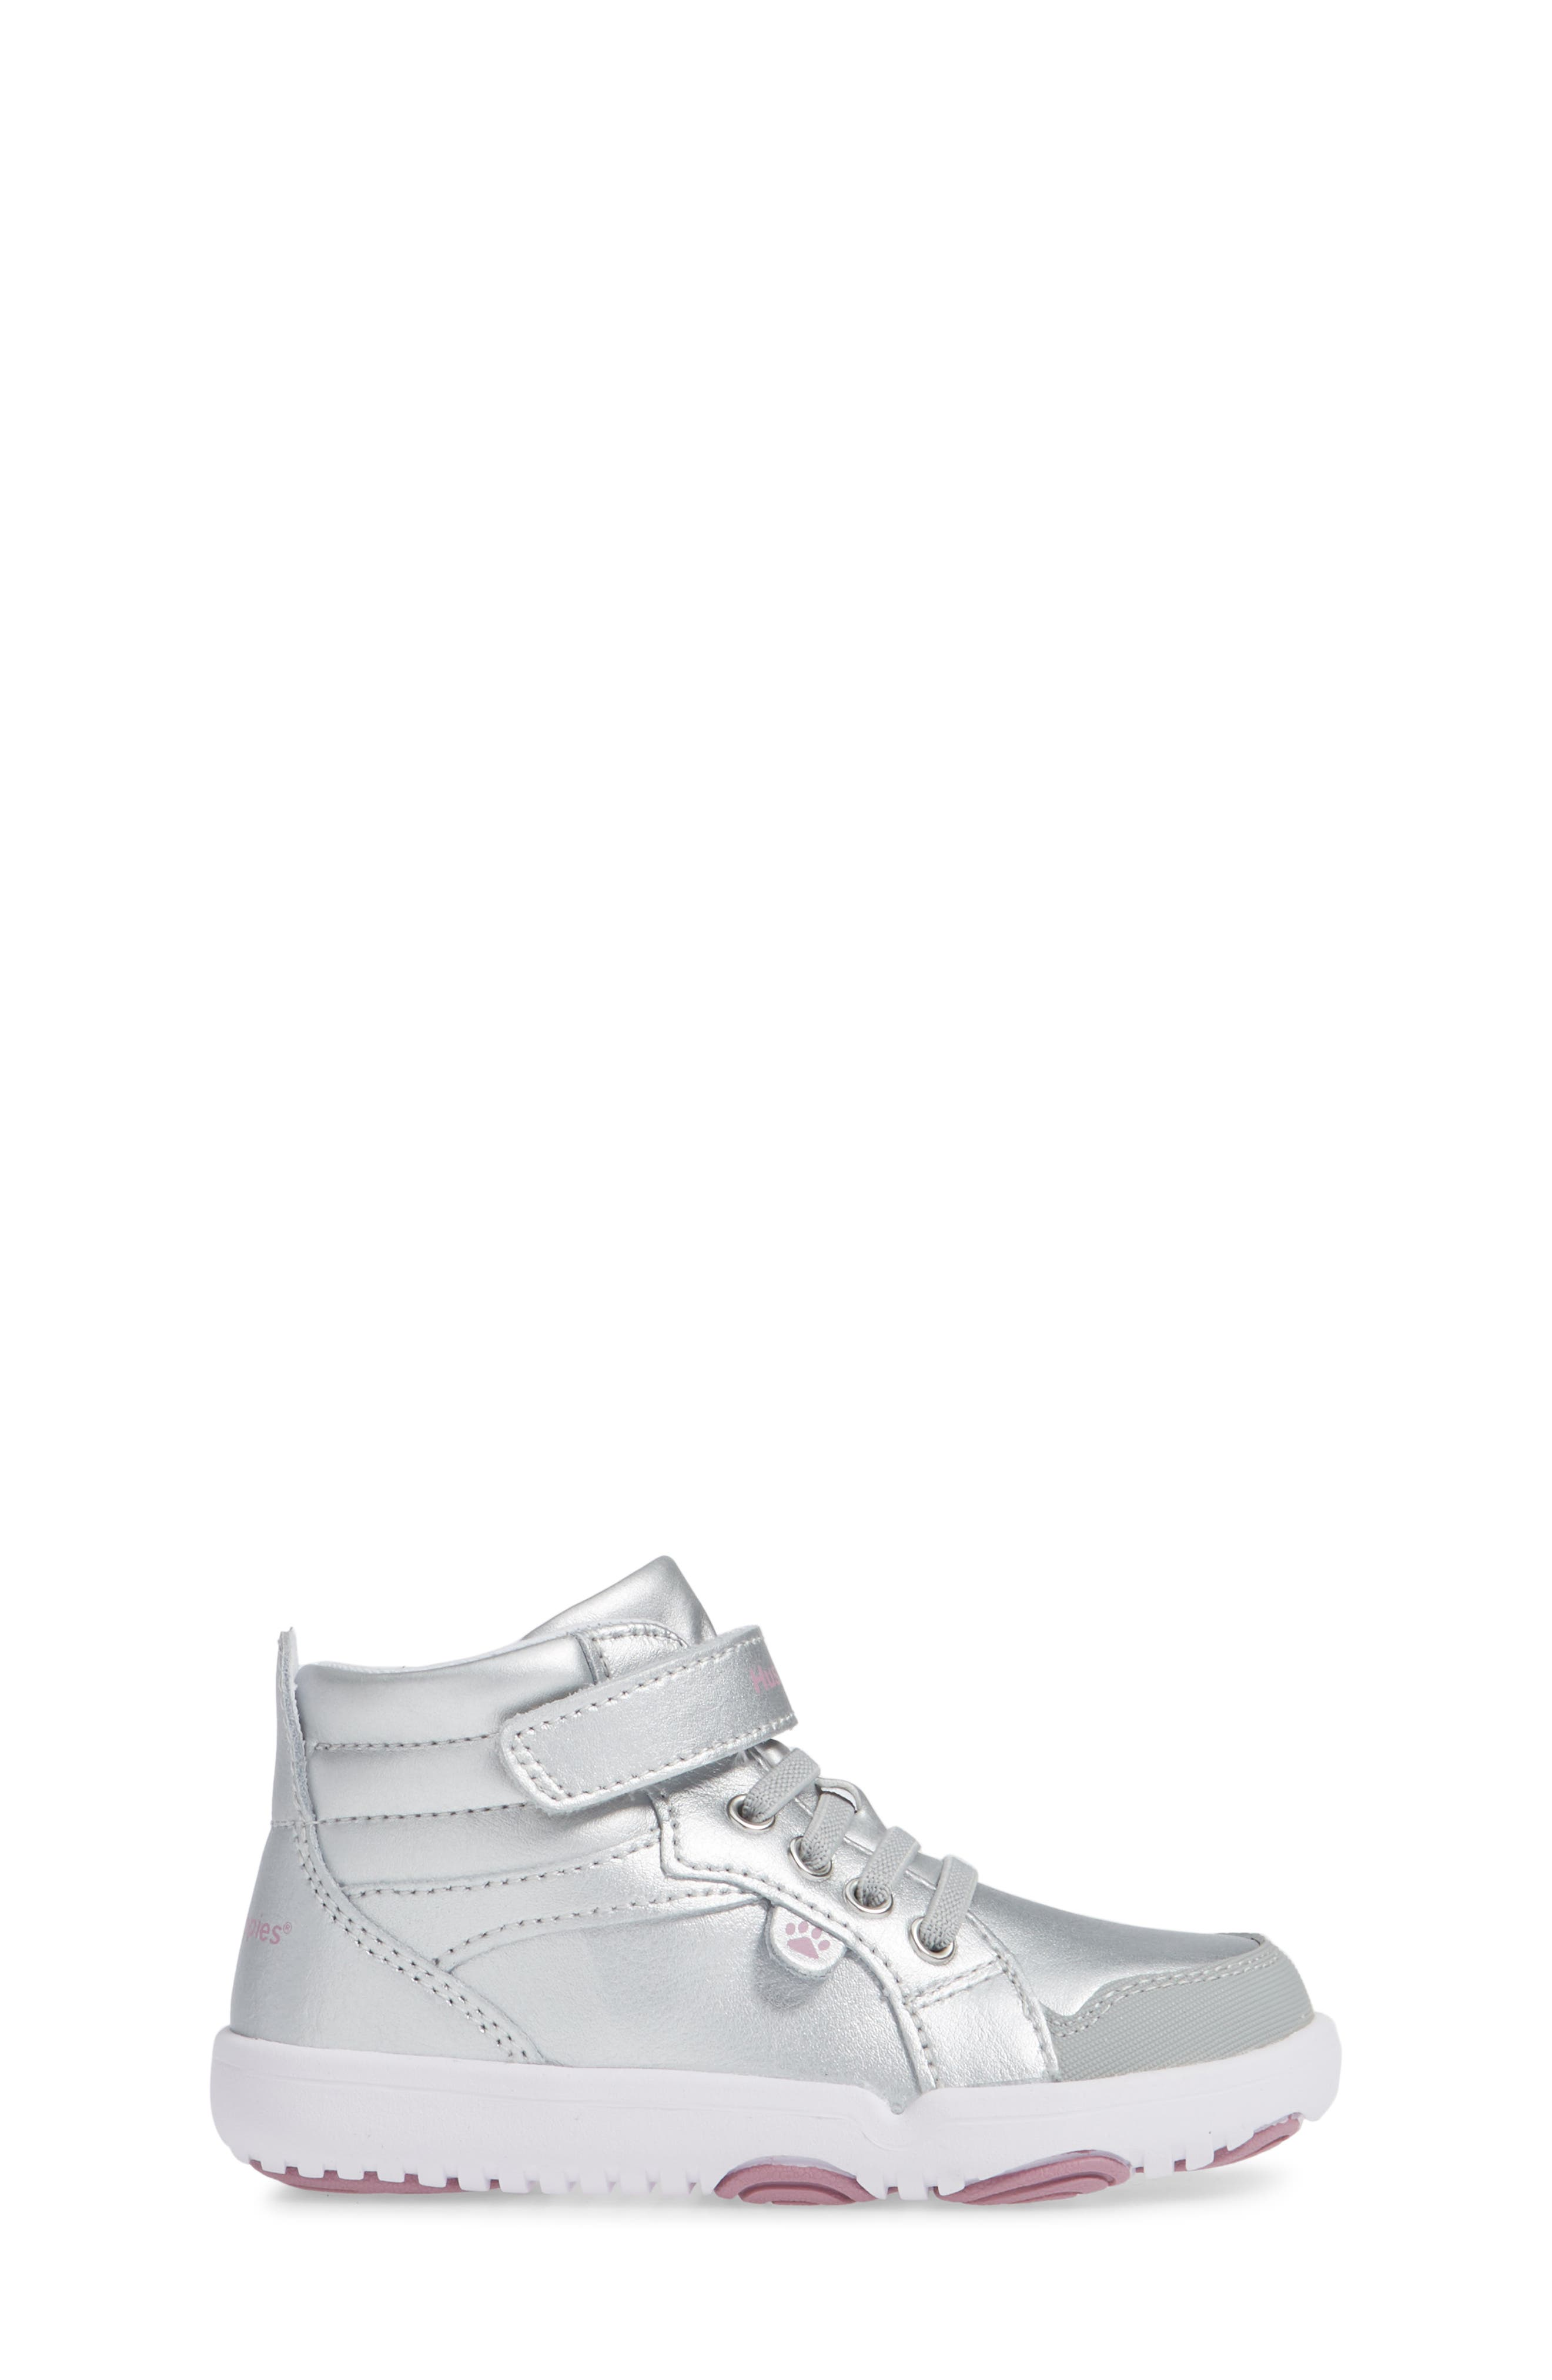 Buddy High Top Sneaker,                             Alternate thumbnail 3, color,                             SILVER